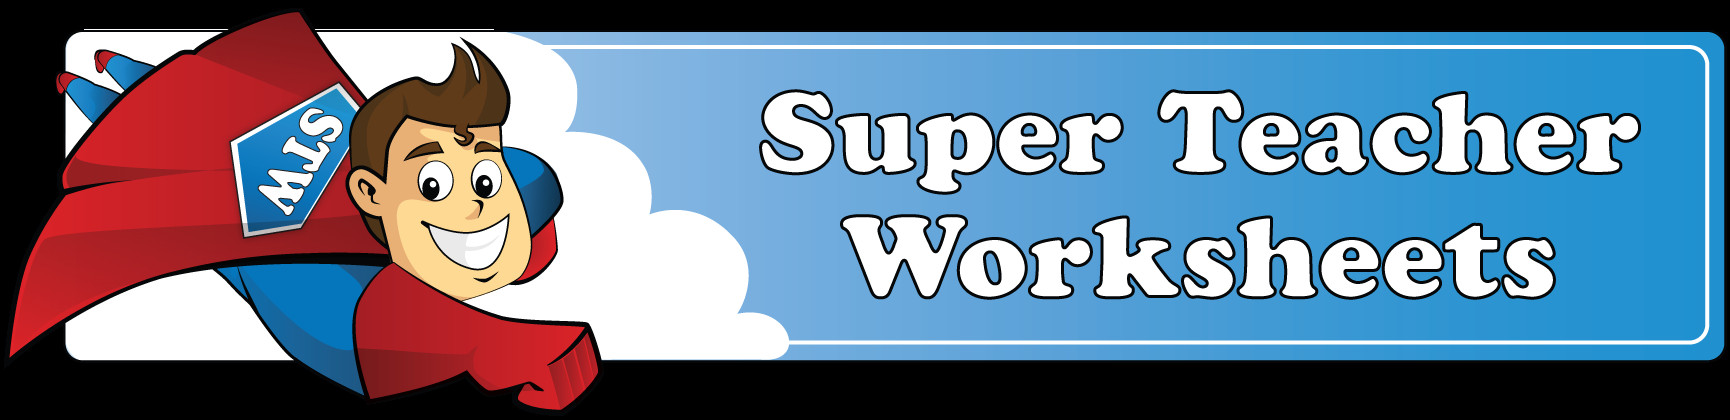 Superteacher Worksheets